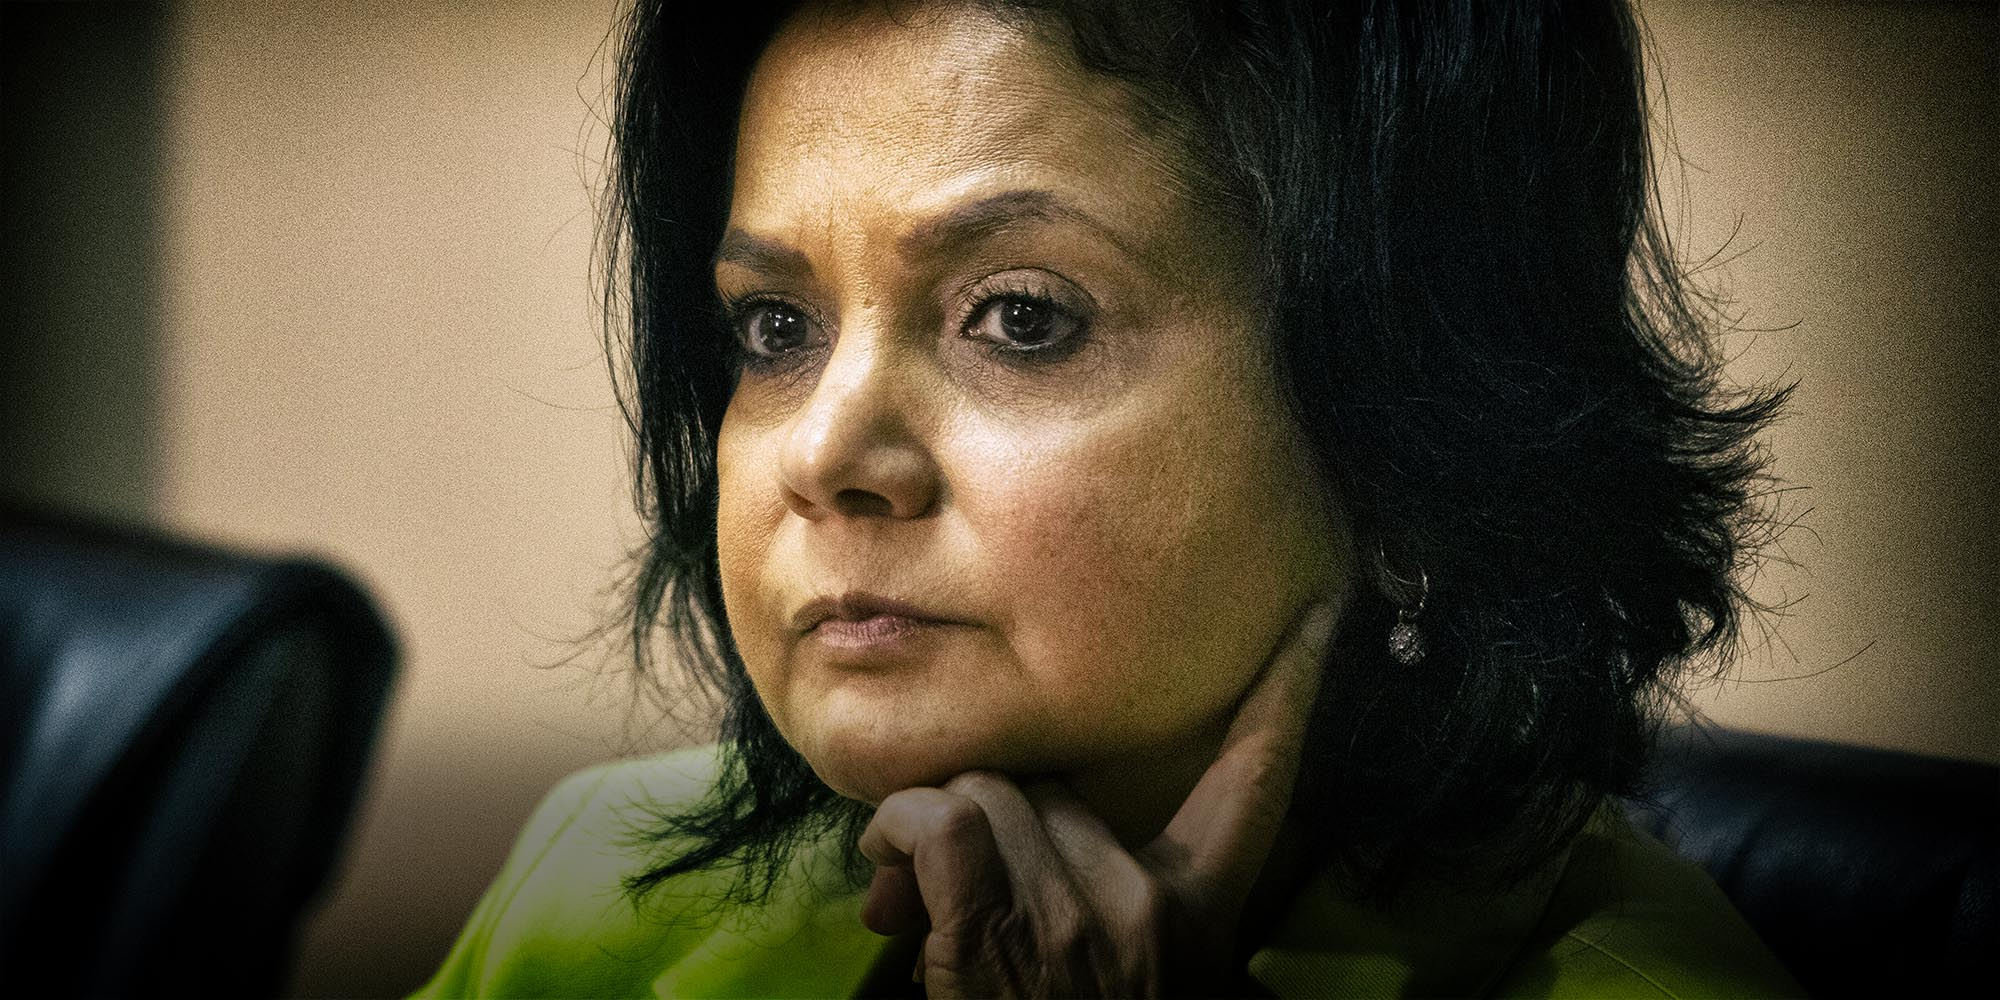 Batohi: No convictions for State Capture accused in 2019 — prosecutions are likely in 2020 - Daily Maverick